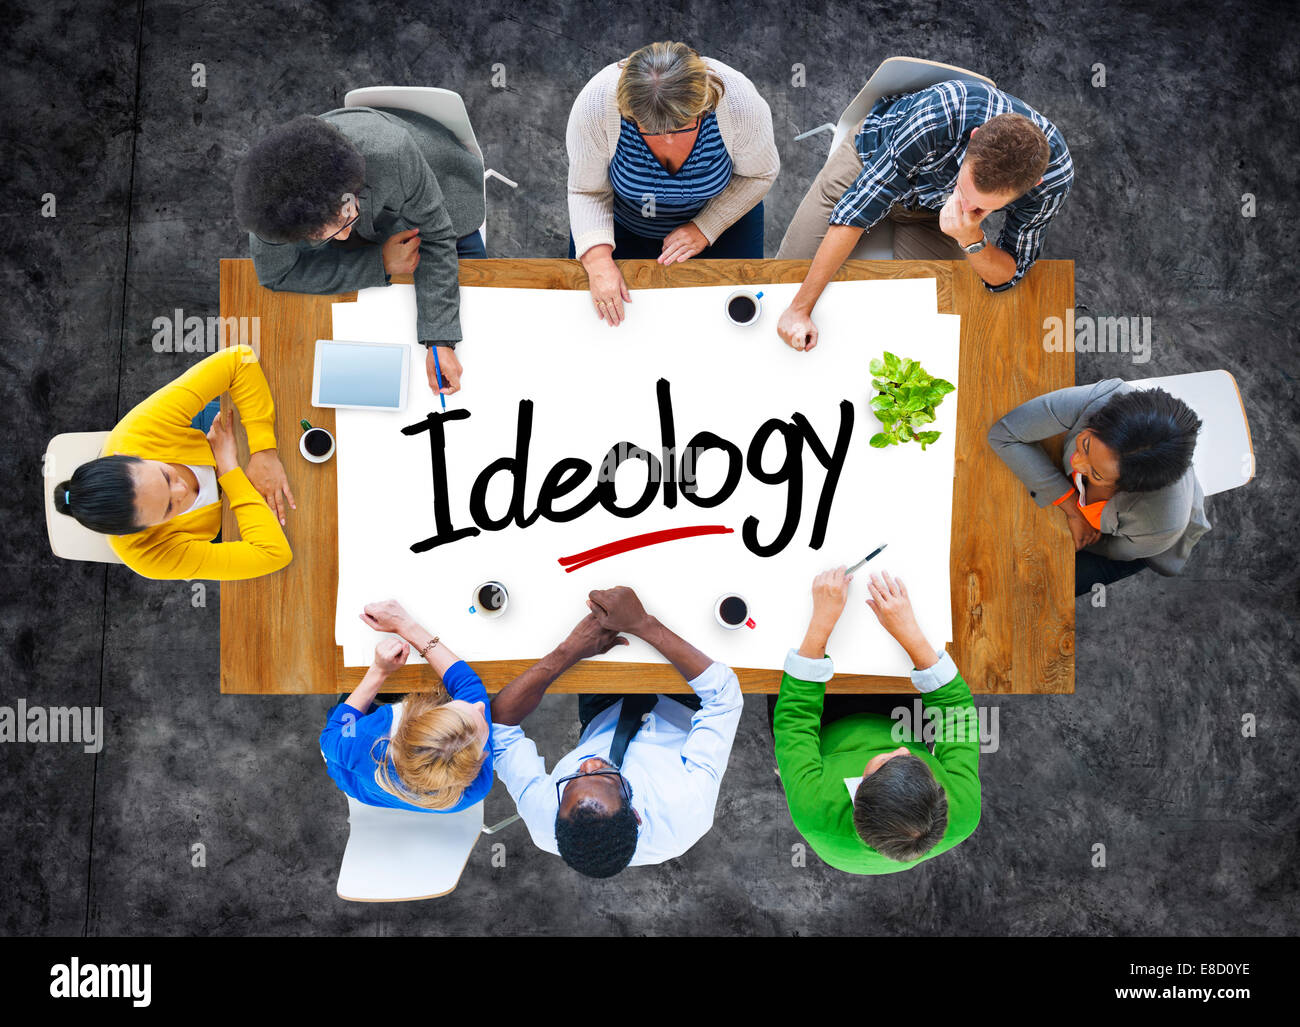 Group of People Brainstorming about Ideology Concept - Stock Image